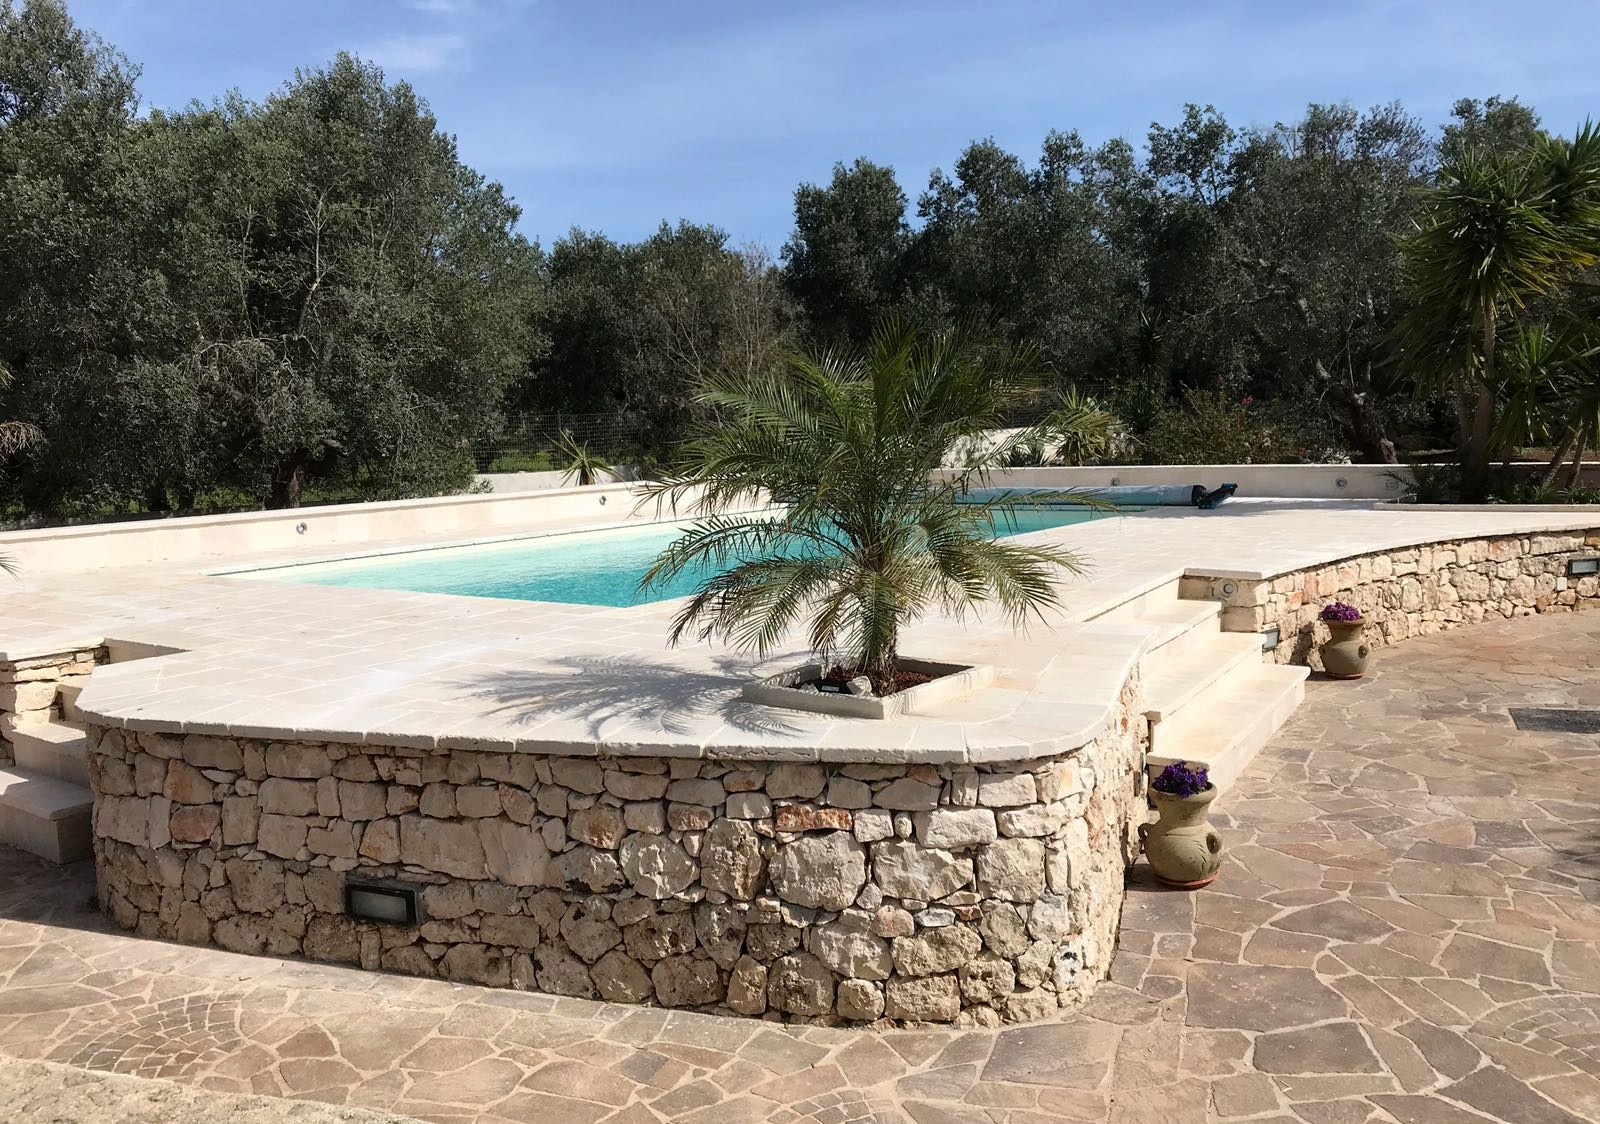 Apartment Cavaliere lovely pool home photo 22517546